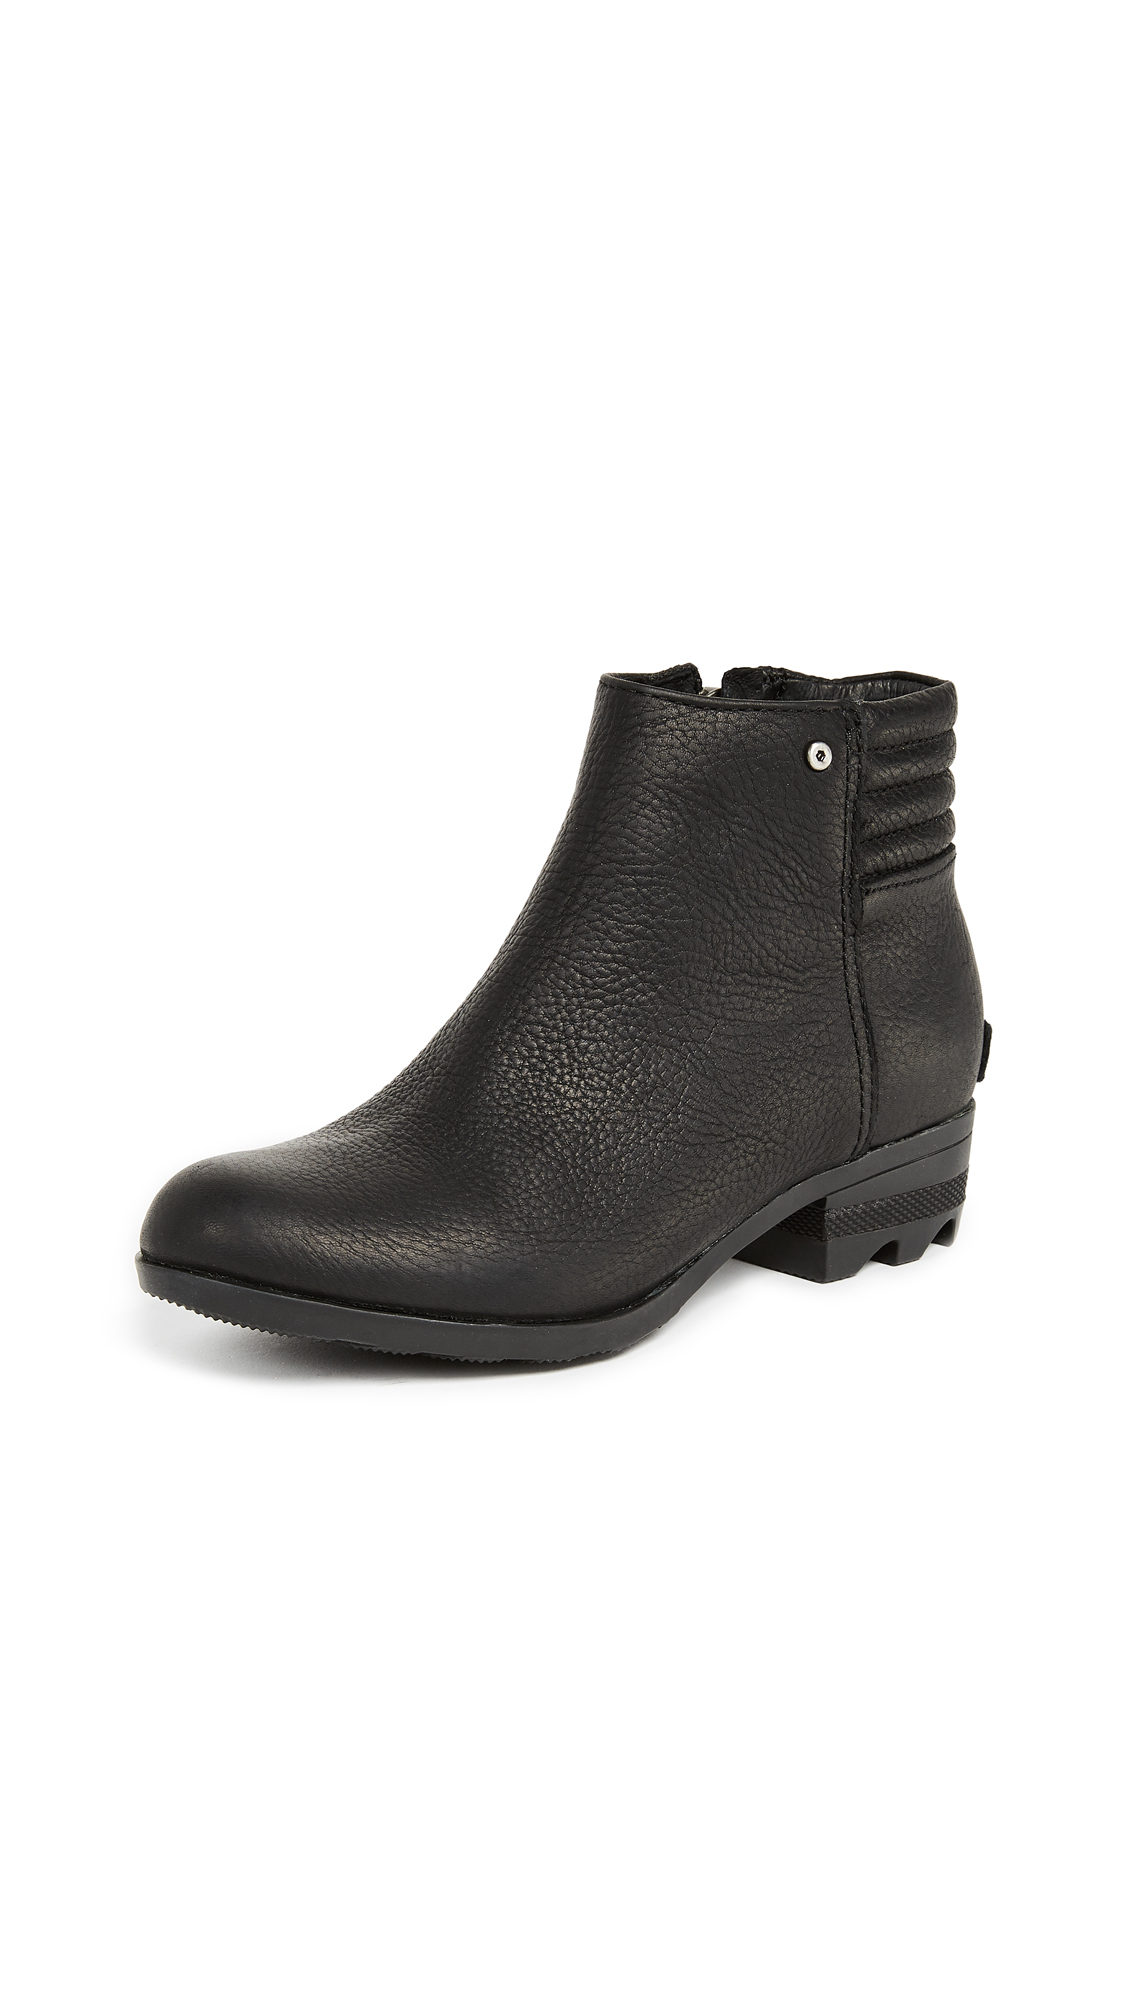 Sorel Danica Short Booties - Black/Quarry